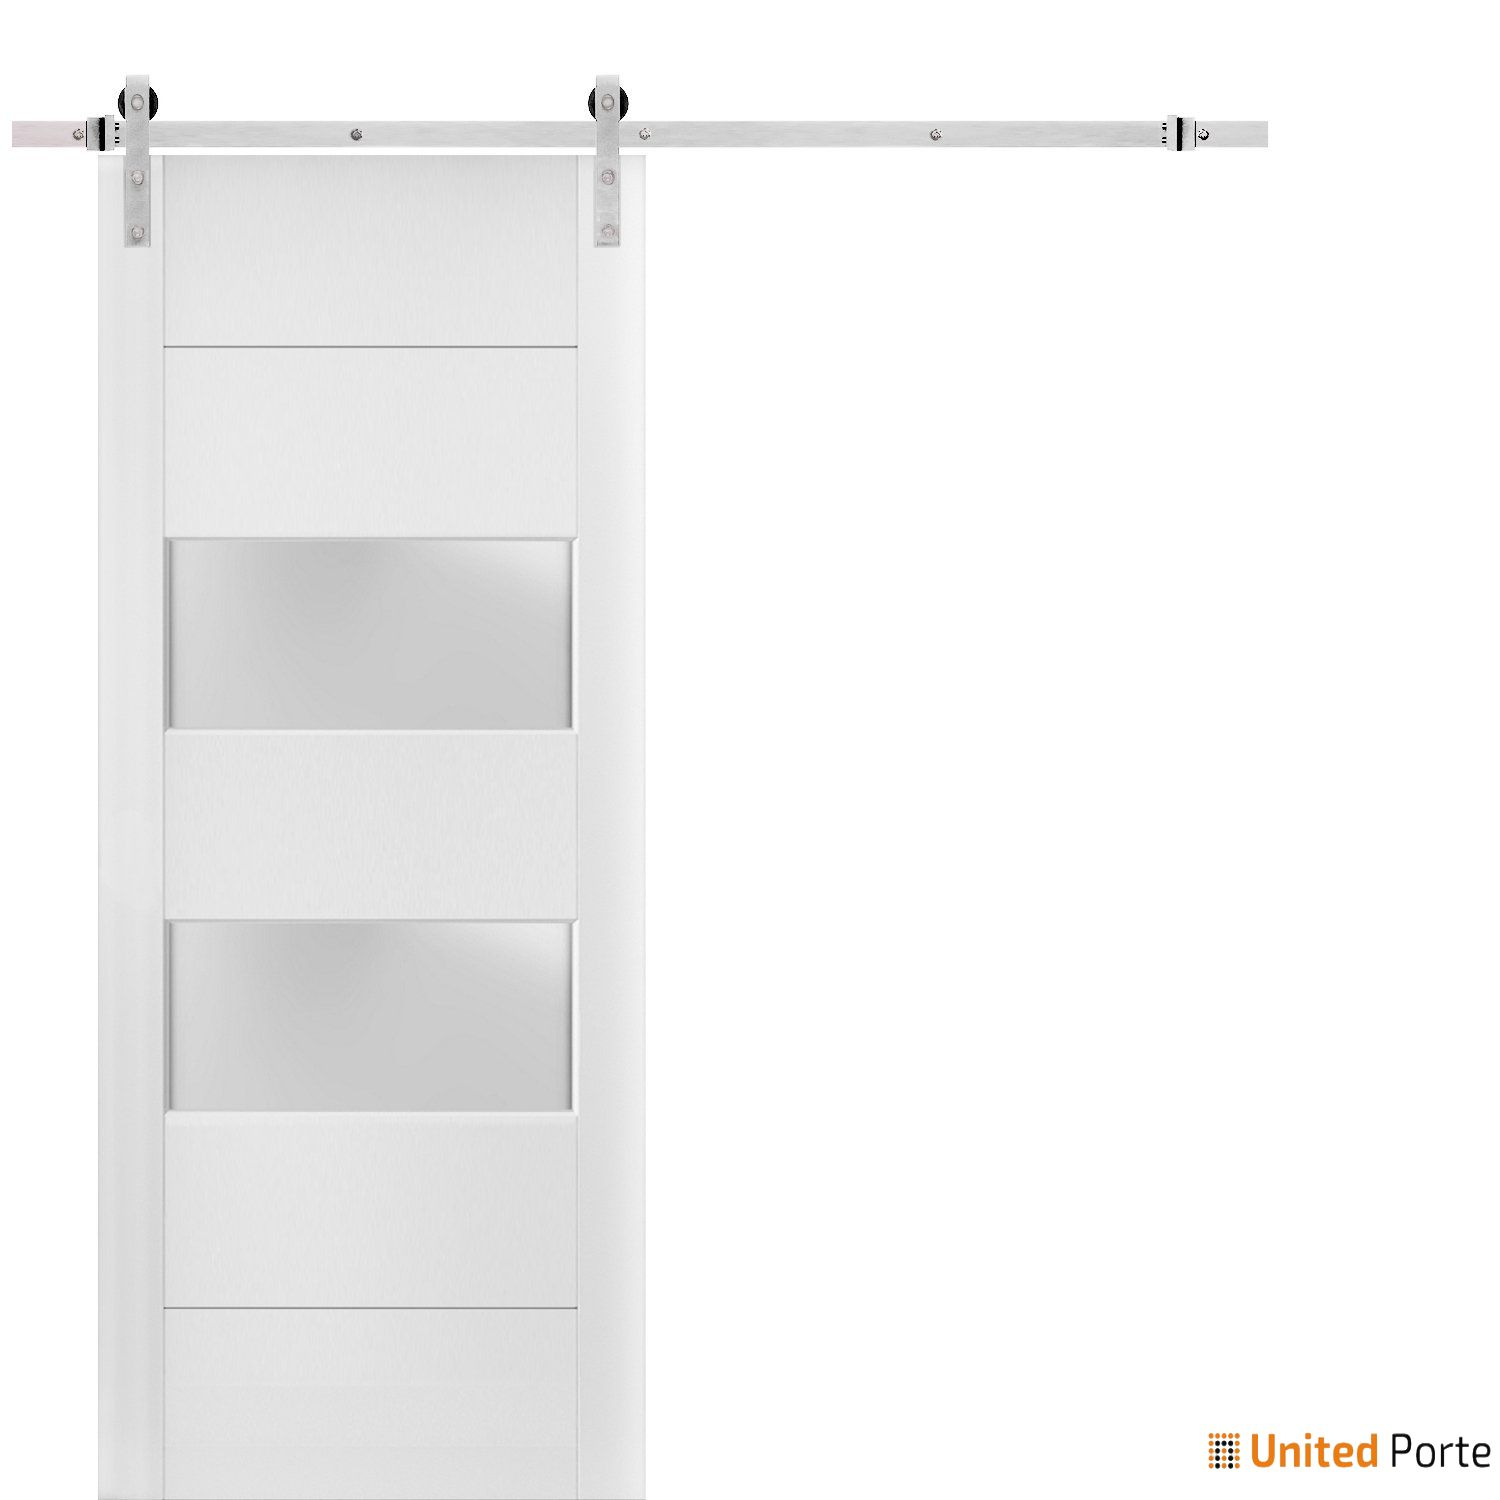 Lucia 4010 White Silk Sturdy Barn Door Frosted Glass 2 lites with Stainless Hardware | Solid Panel Interior Barn Doors